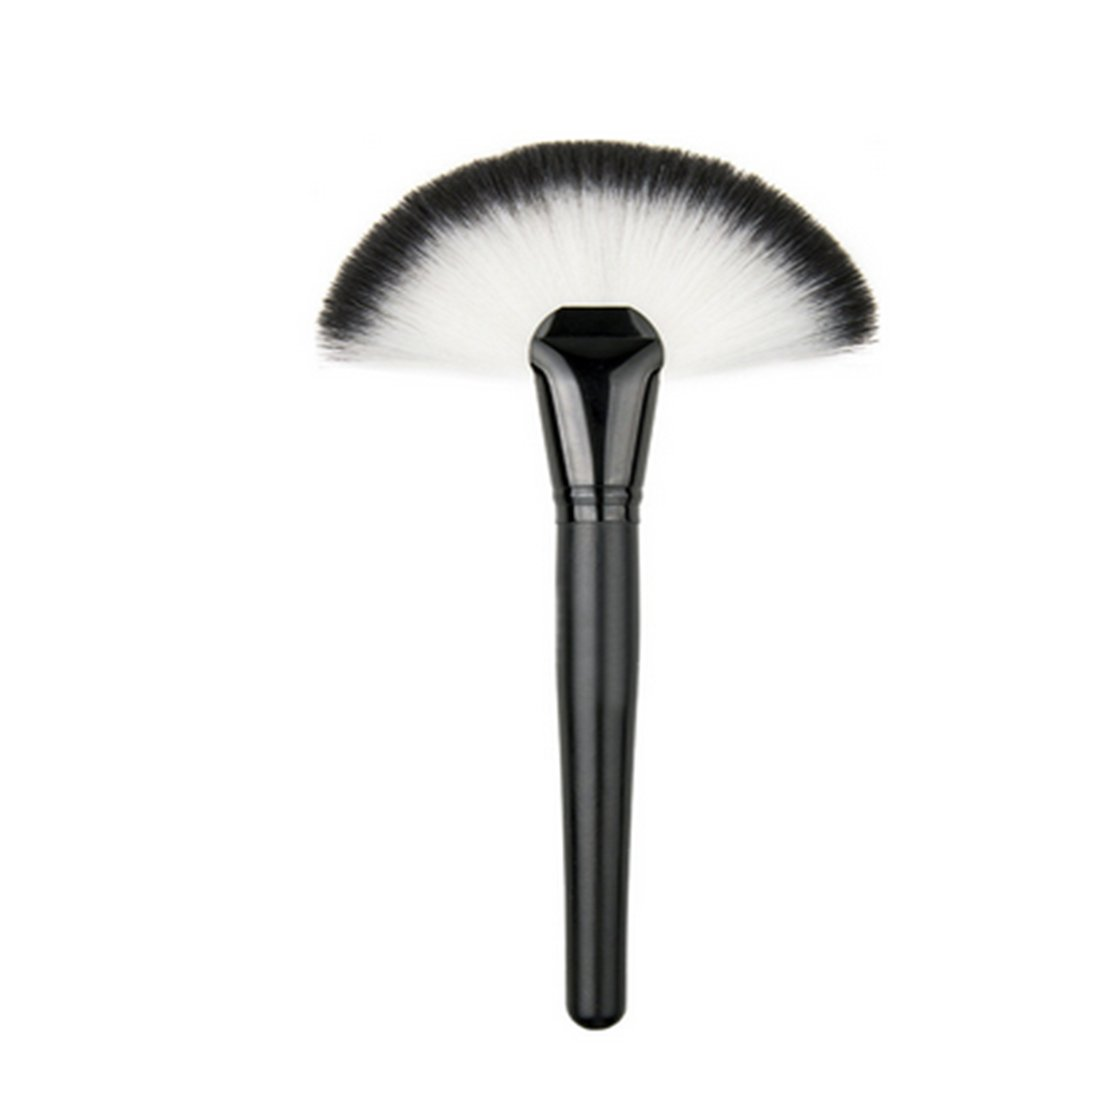 TraveT Professional Single Makeup Brush Blush/Powder Sector Makeup Brush Soft Fan Brush Foundation Brushes Make Up Tool